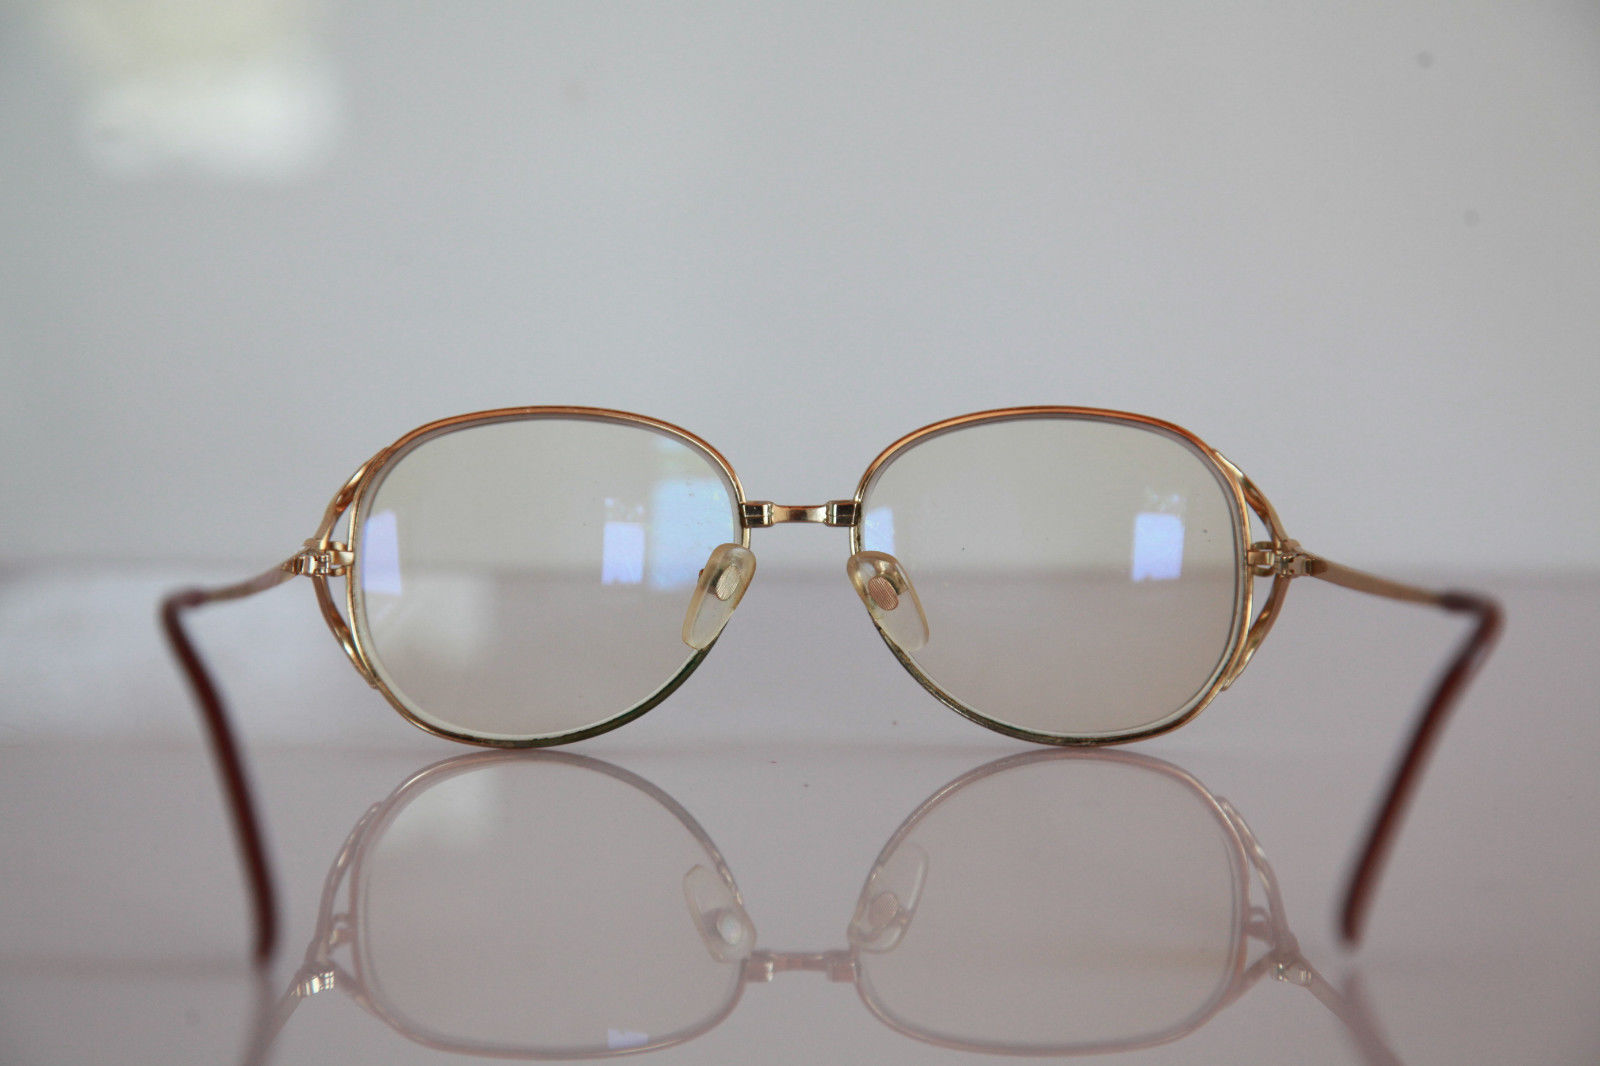 Eyeglasses Frame Made In Germany : DUNKER Eyewear, Gold Frame, RX-Able Prescription Lenses ...